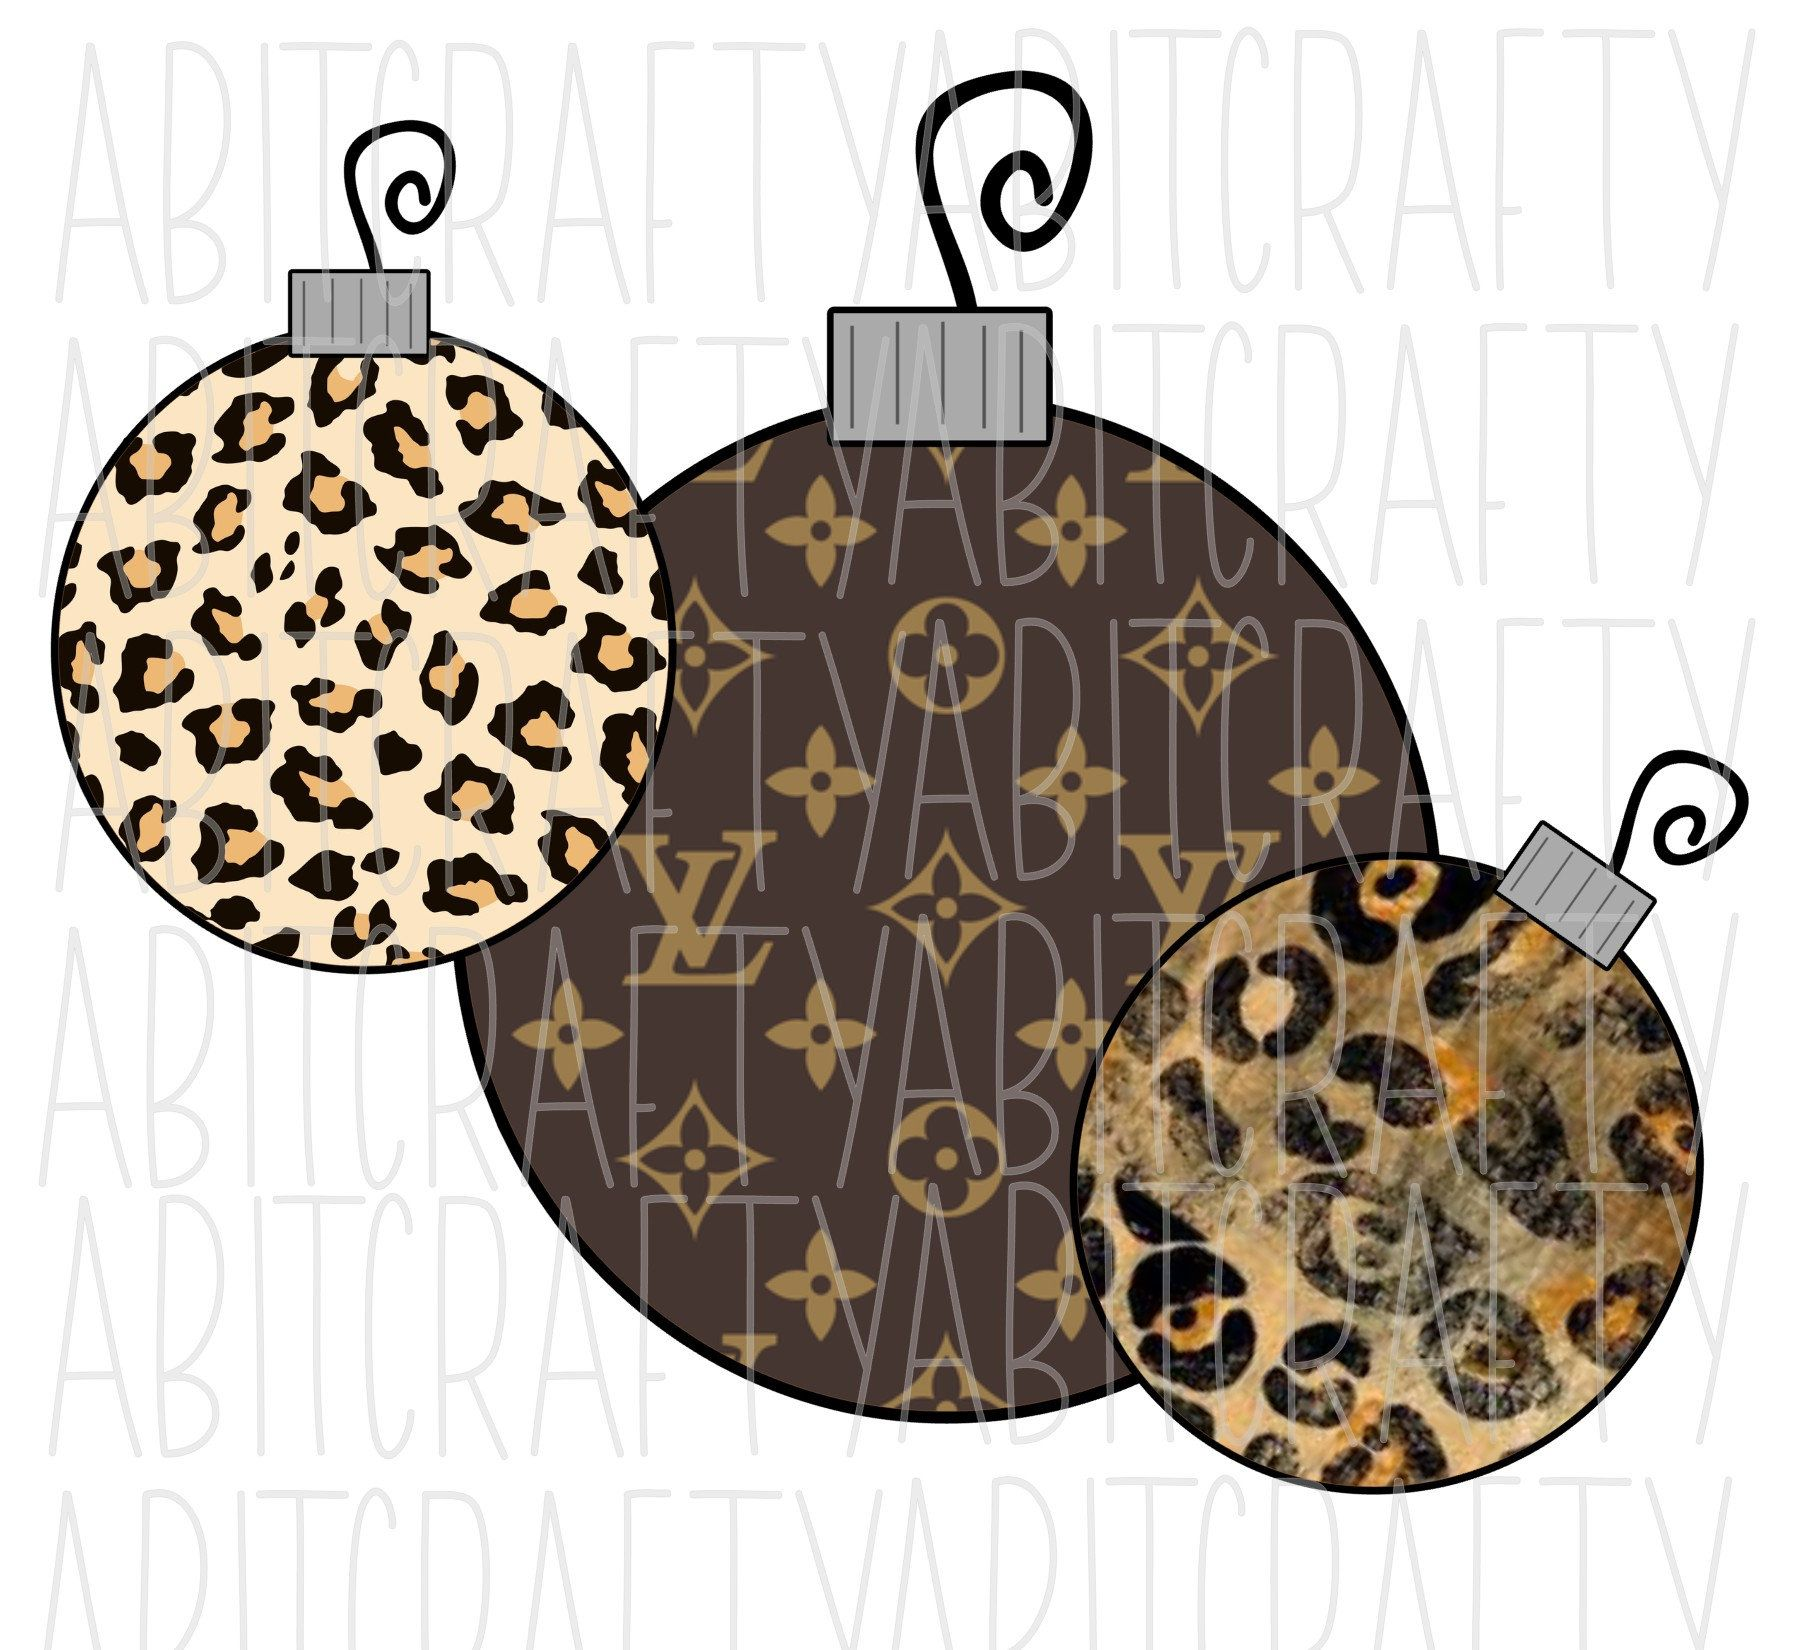 Designer Ornament Png Jpeg Sublimation Digital Download In 2020 Digital Download Etsy Digital Download Things To Sell